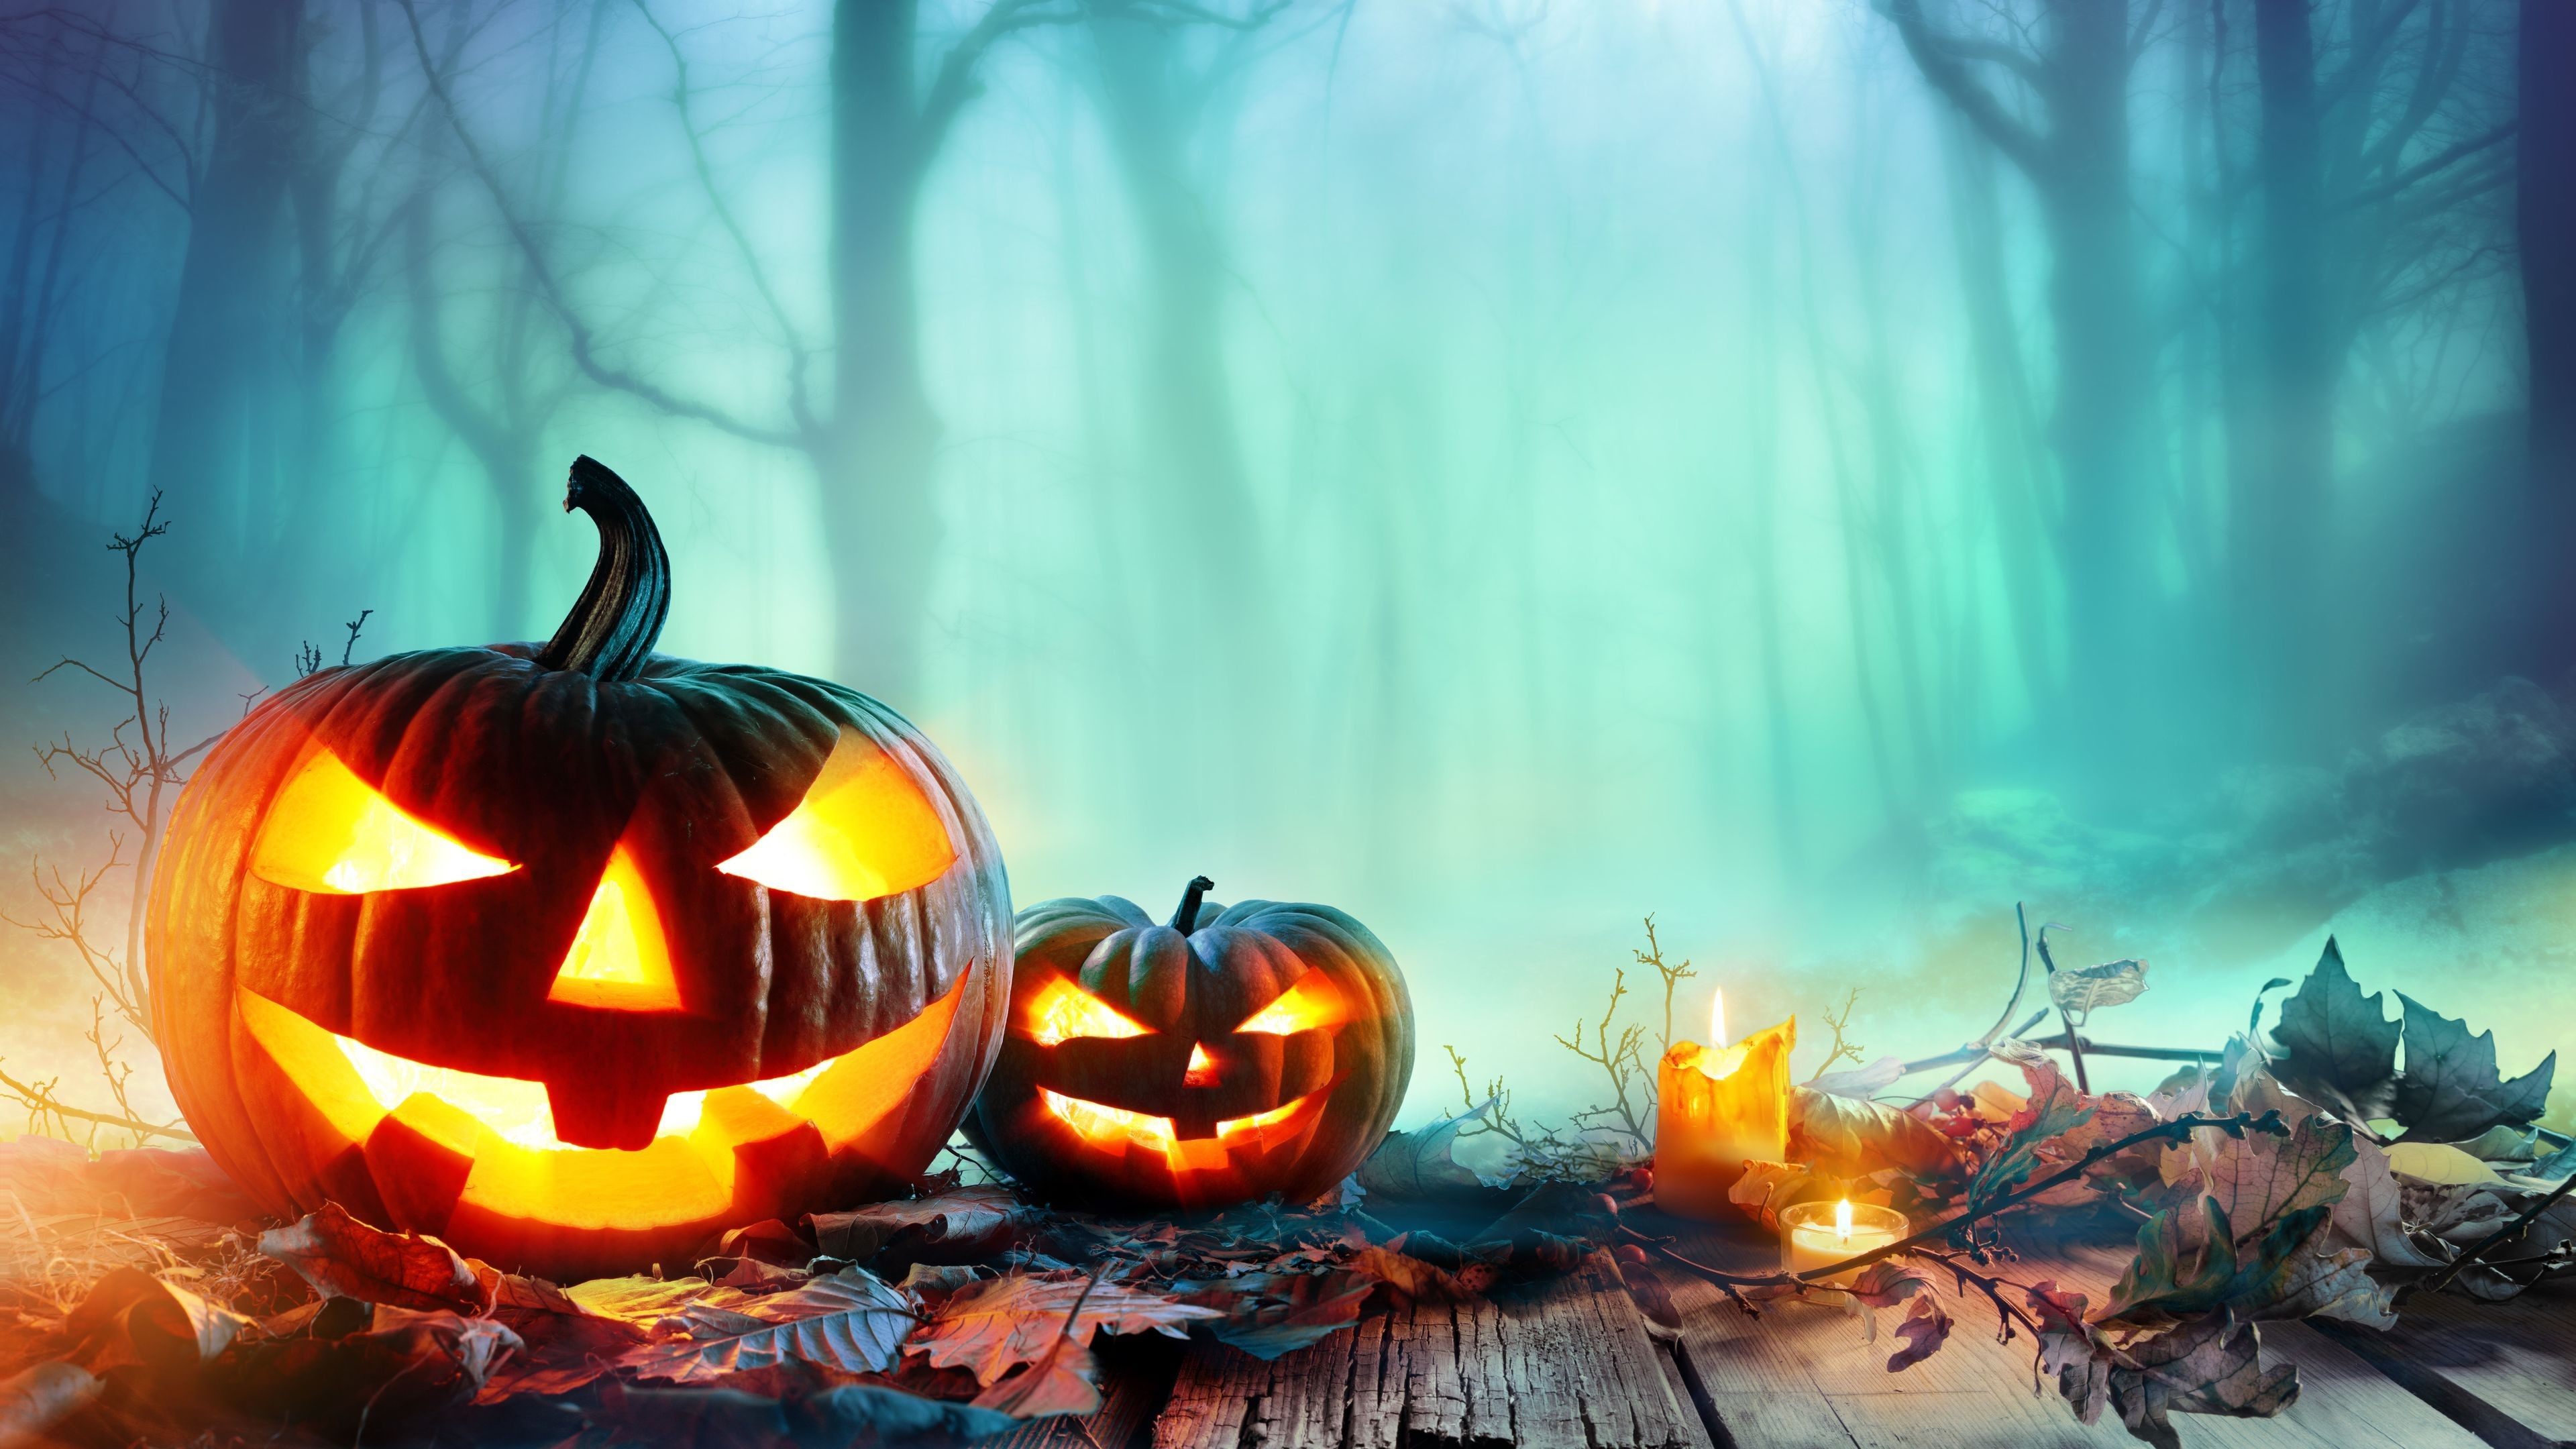 Wallpaper 4k 4k new Halloween 4kwallpapers, 5k wallpapers